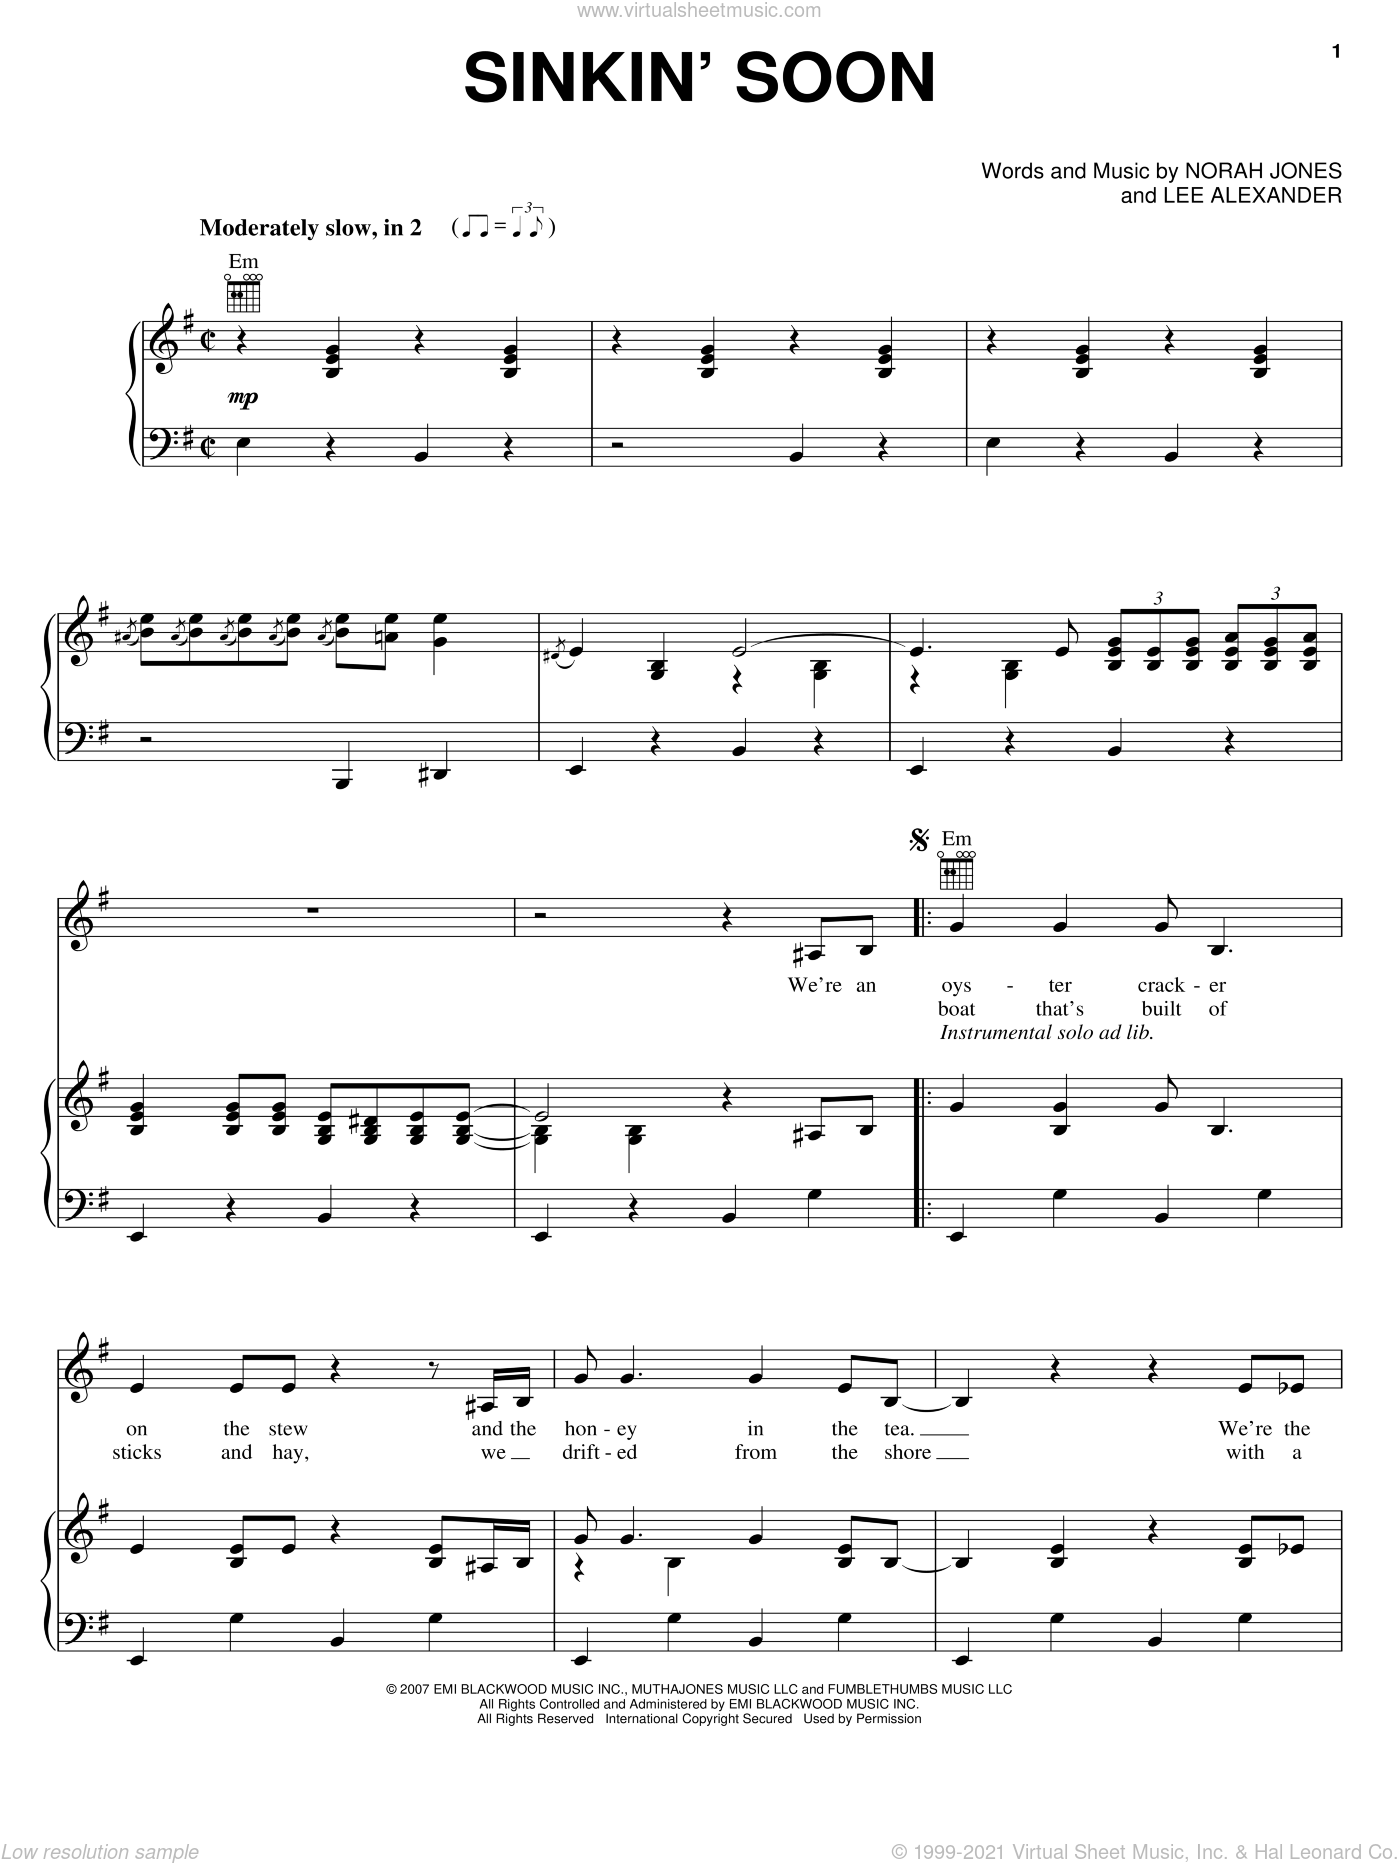 Sinkin' Soon sheet music for voice, piano or guitar by Lee Alexander